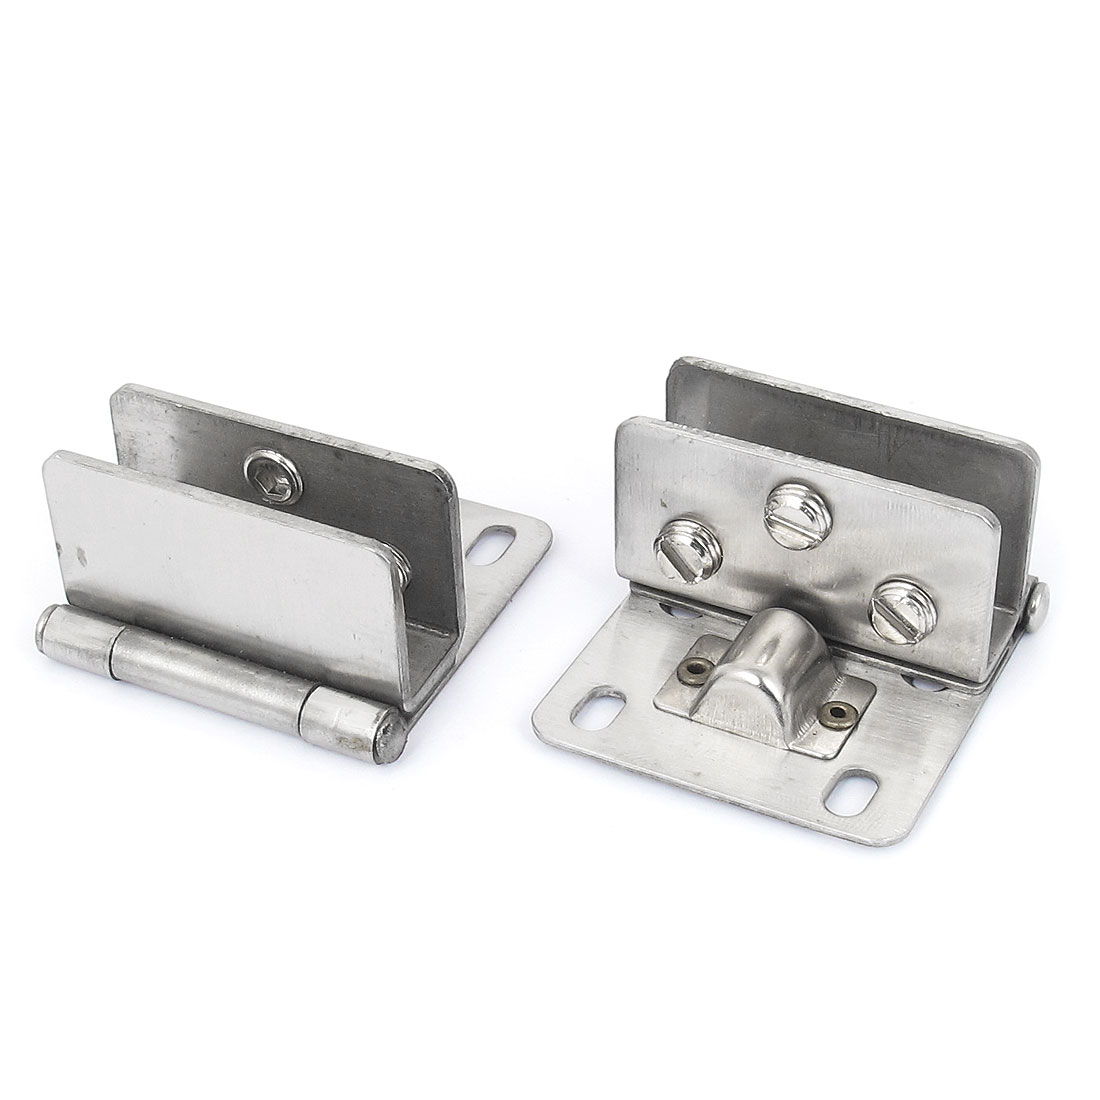 8-12mm Thickness Metal Wall Mounted Cabinet Glass Clamp Clip Door Hinge 2pcs